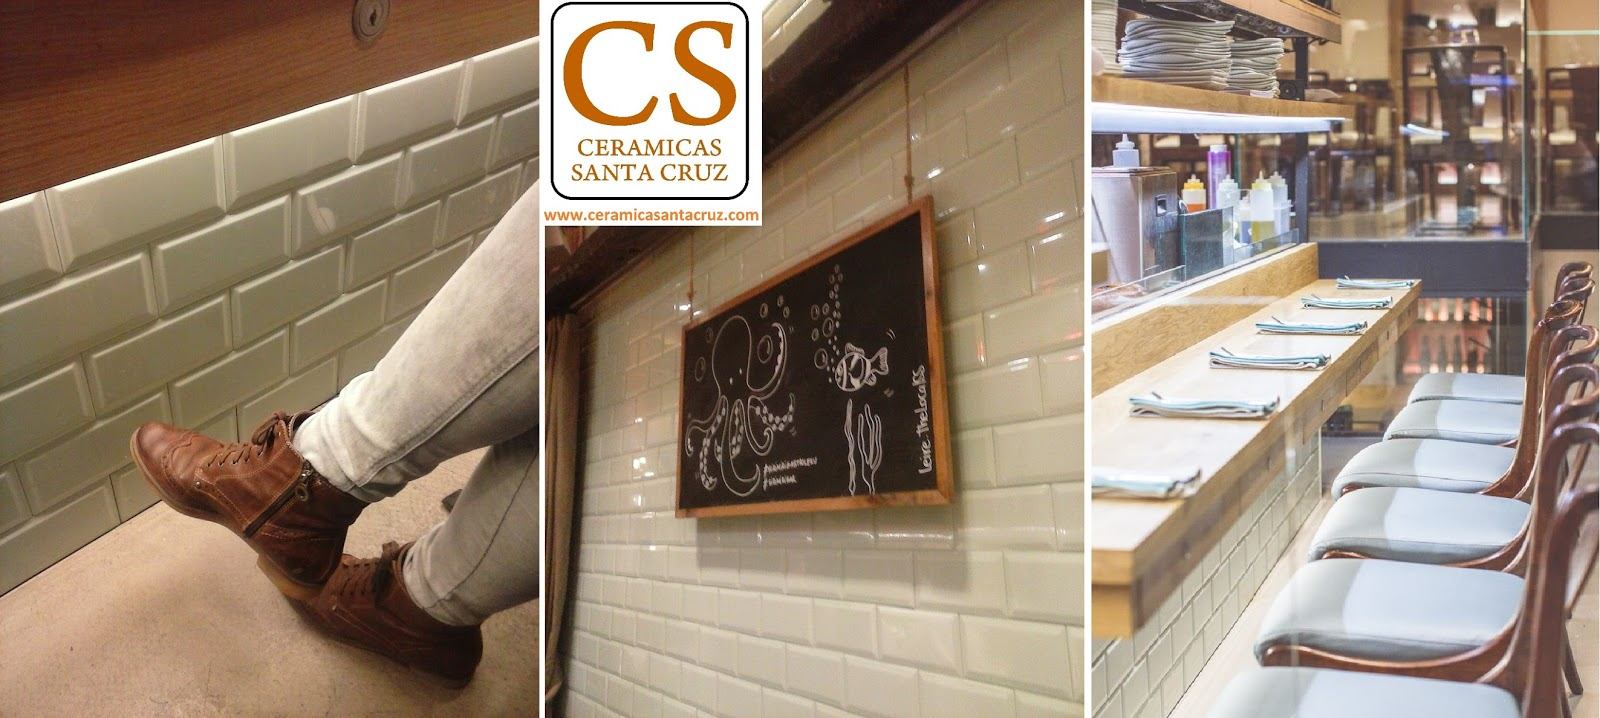 Ceramicas santa cruz idea para decorar bar restaurante for Azulejos restaurante